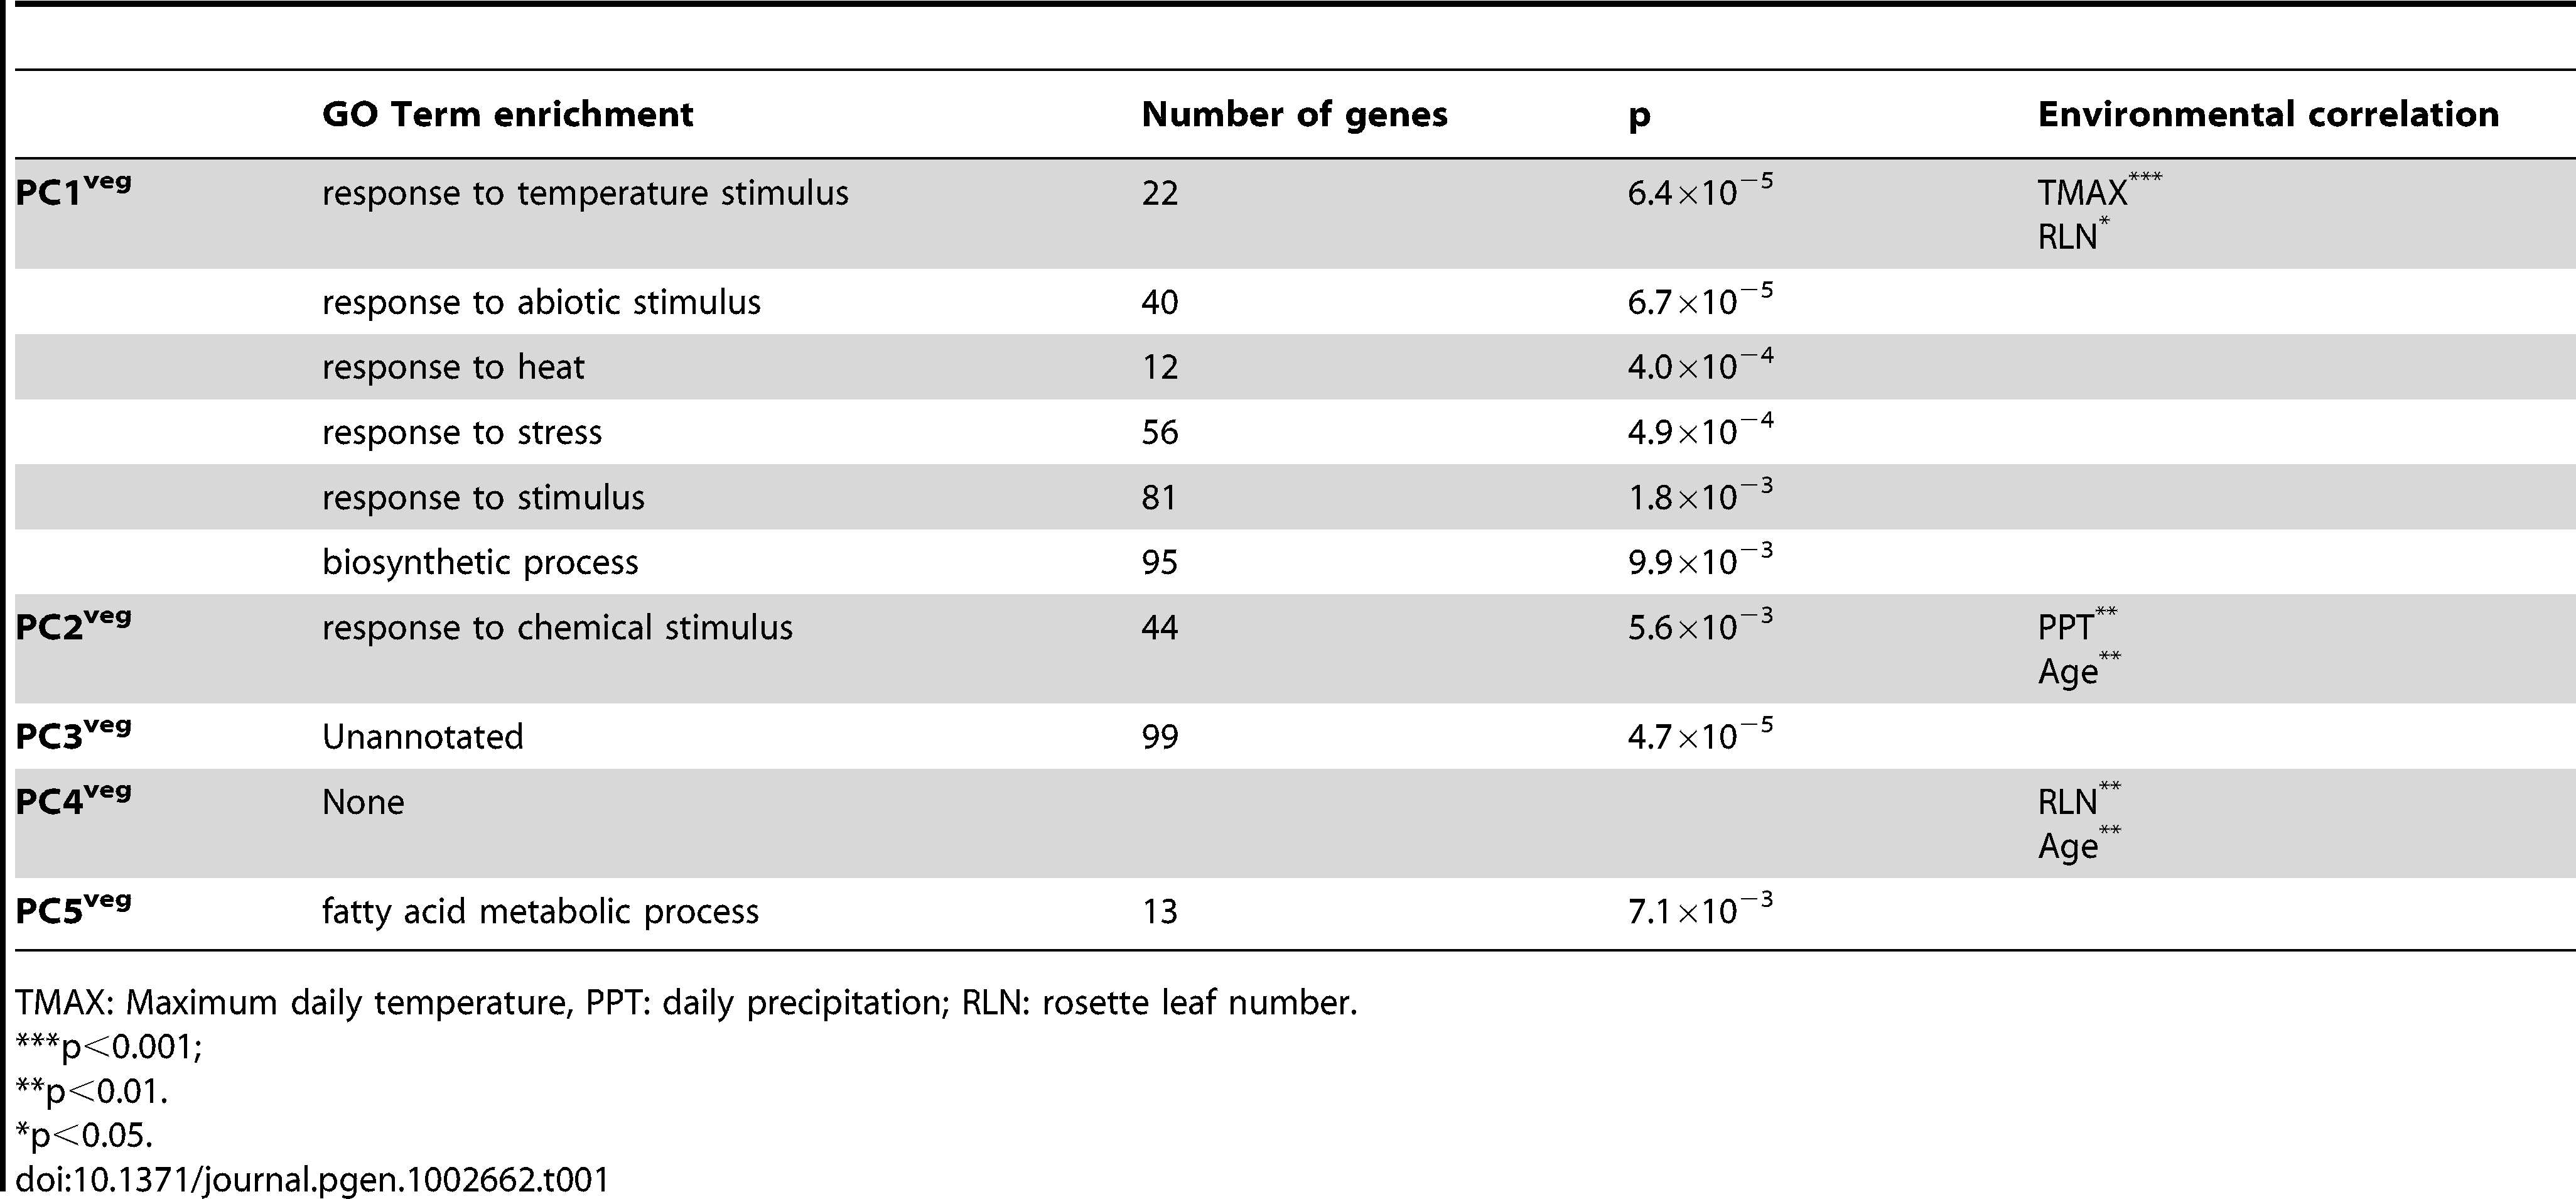 Characteristics of the major vegetative stage principal components of <i>A. thaliana</i> genome-wide gene expression in the field.